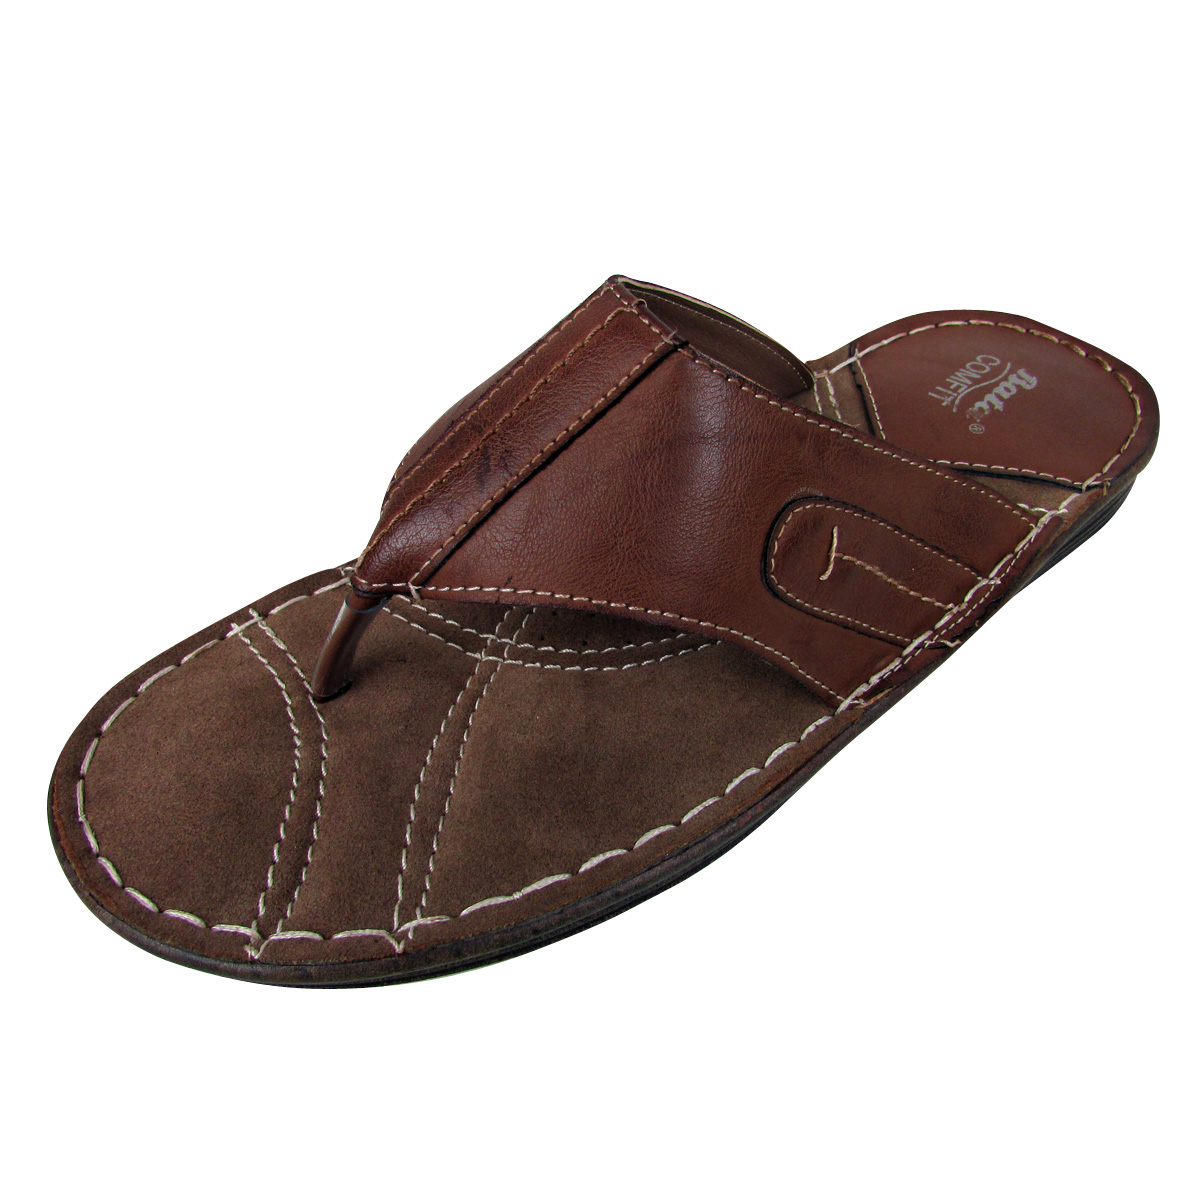 Mens Smart Leather Shoes In The Uk In Size